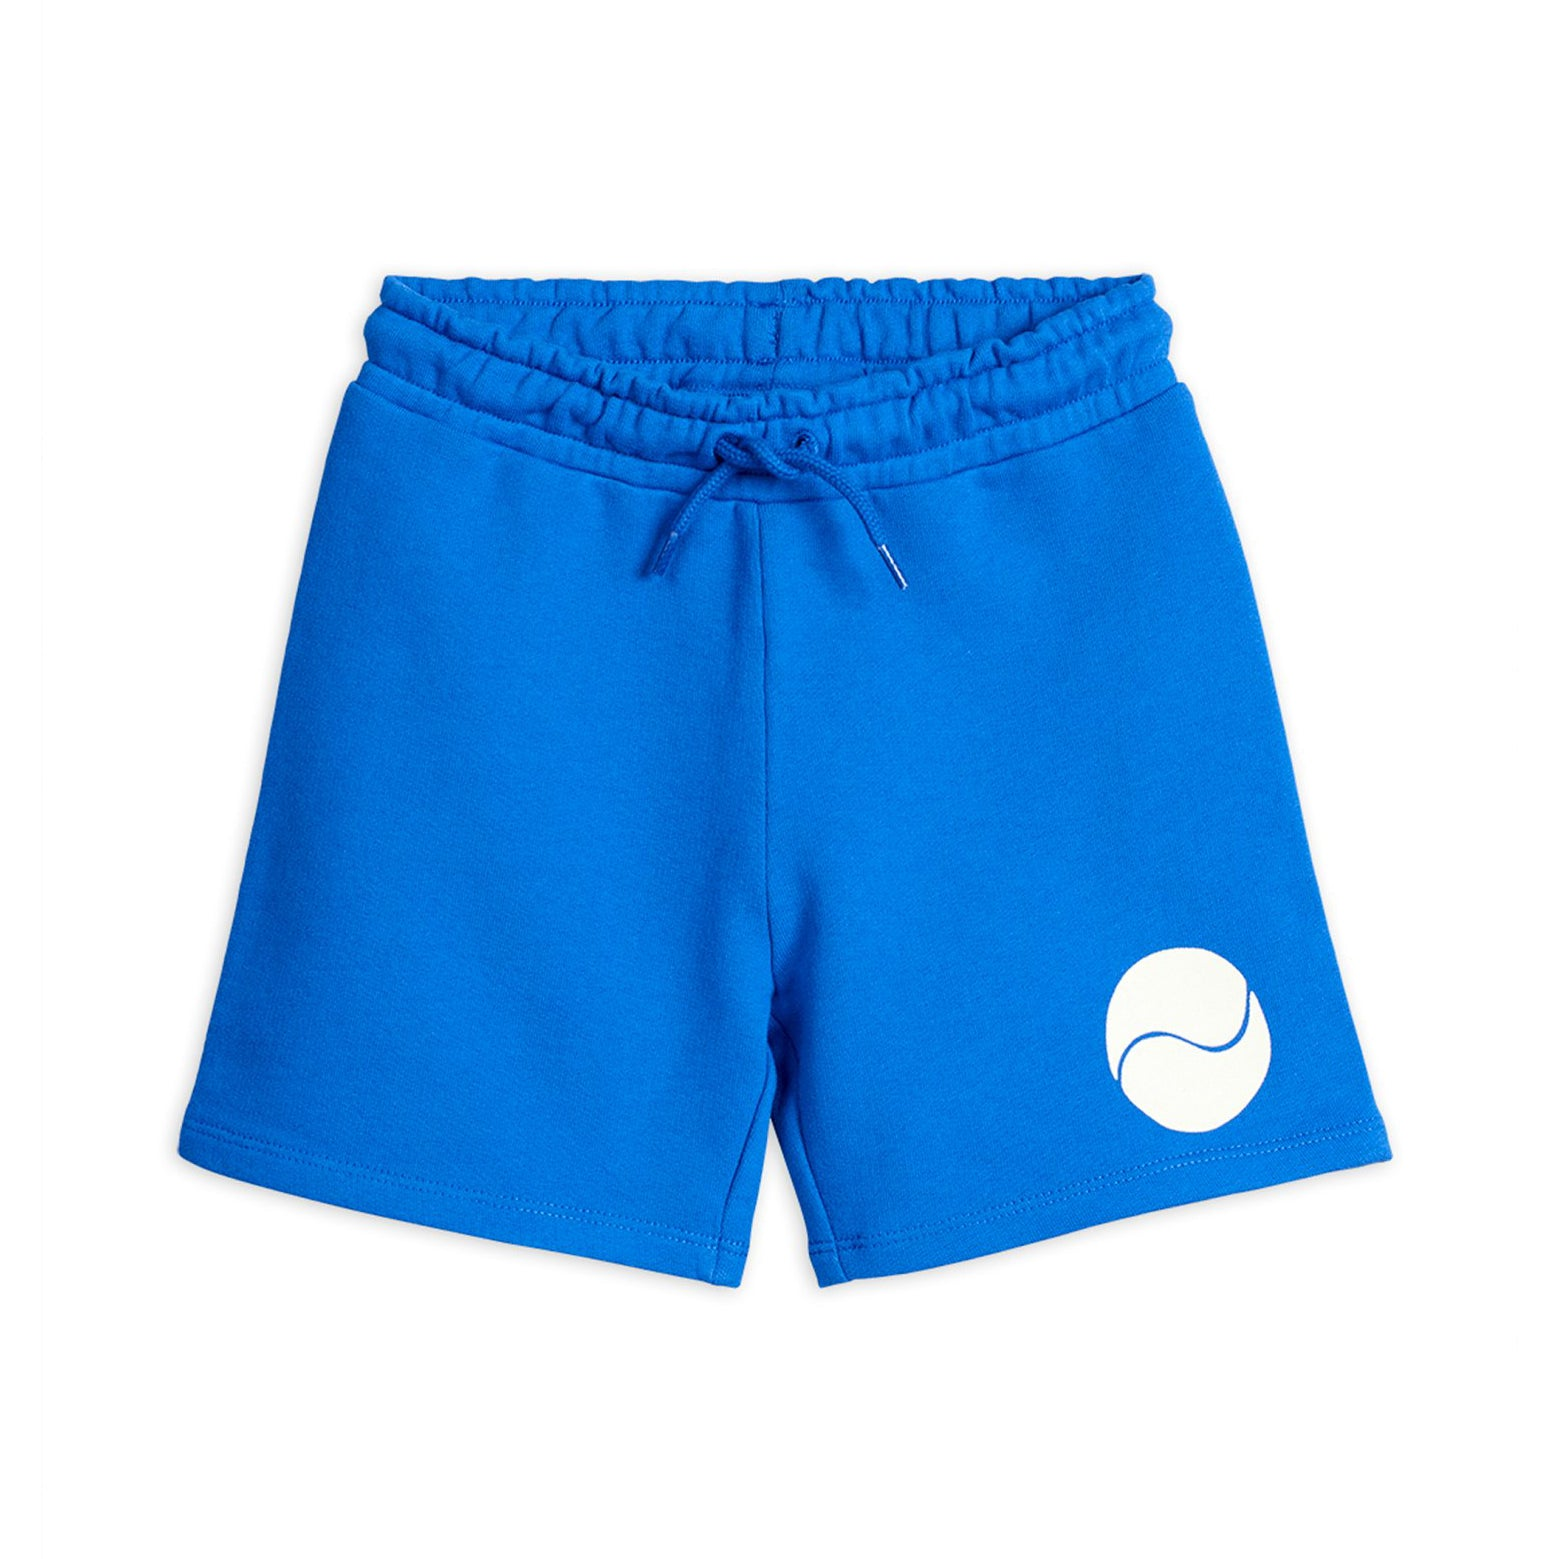 Mini Rodini game svetarishortsit, blue